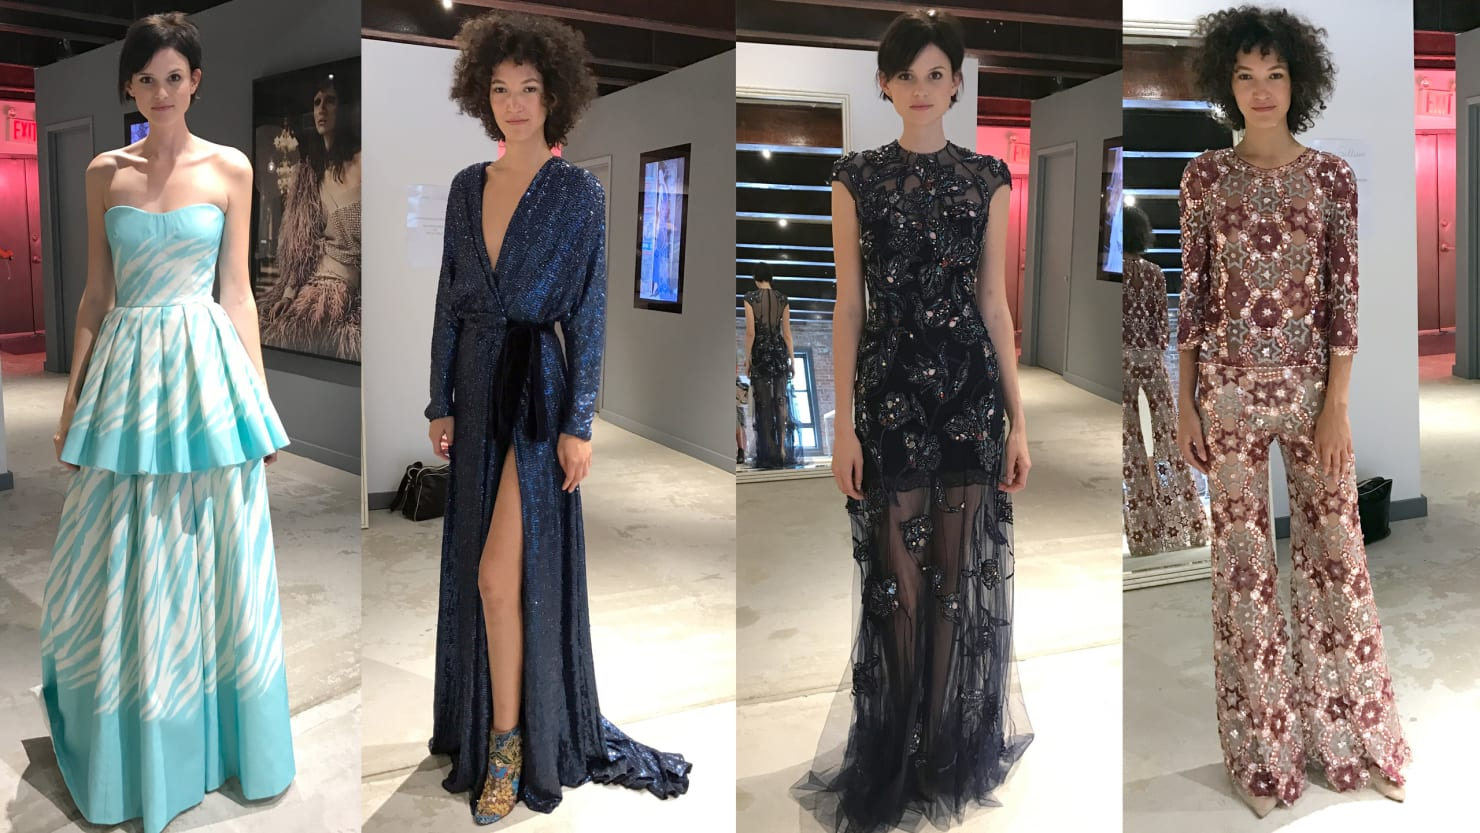 Why hollywood loves jenny packham the designer whose show quietly why hollywood loves jenny packham the designer whose show quietly won nyfw baanklon Image collections